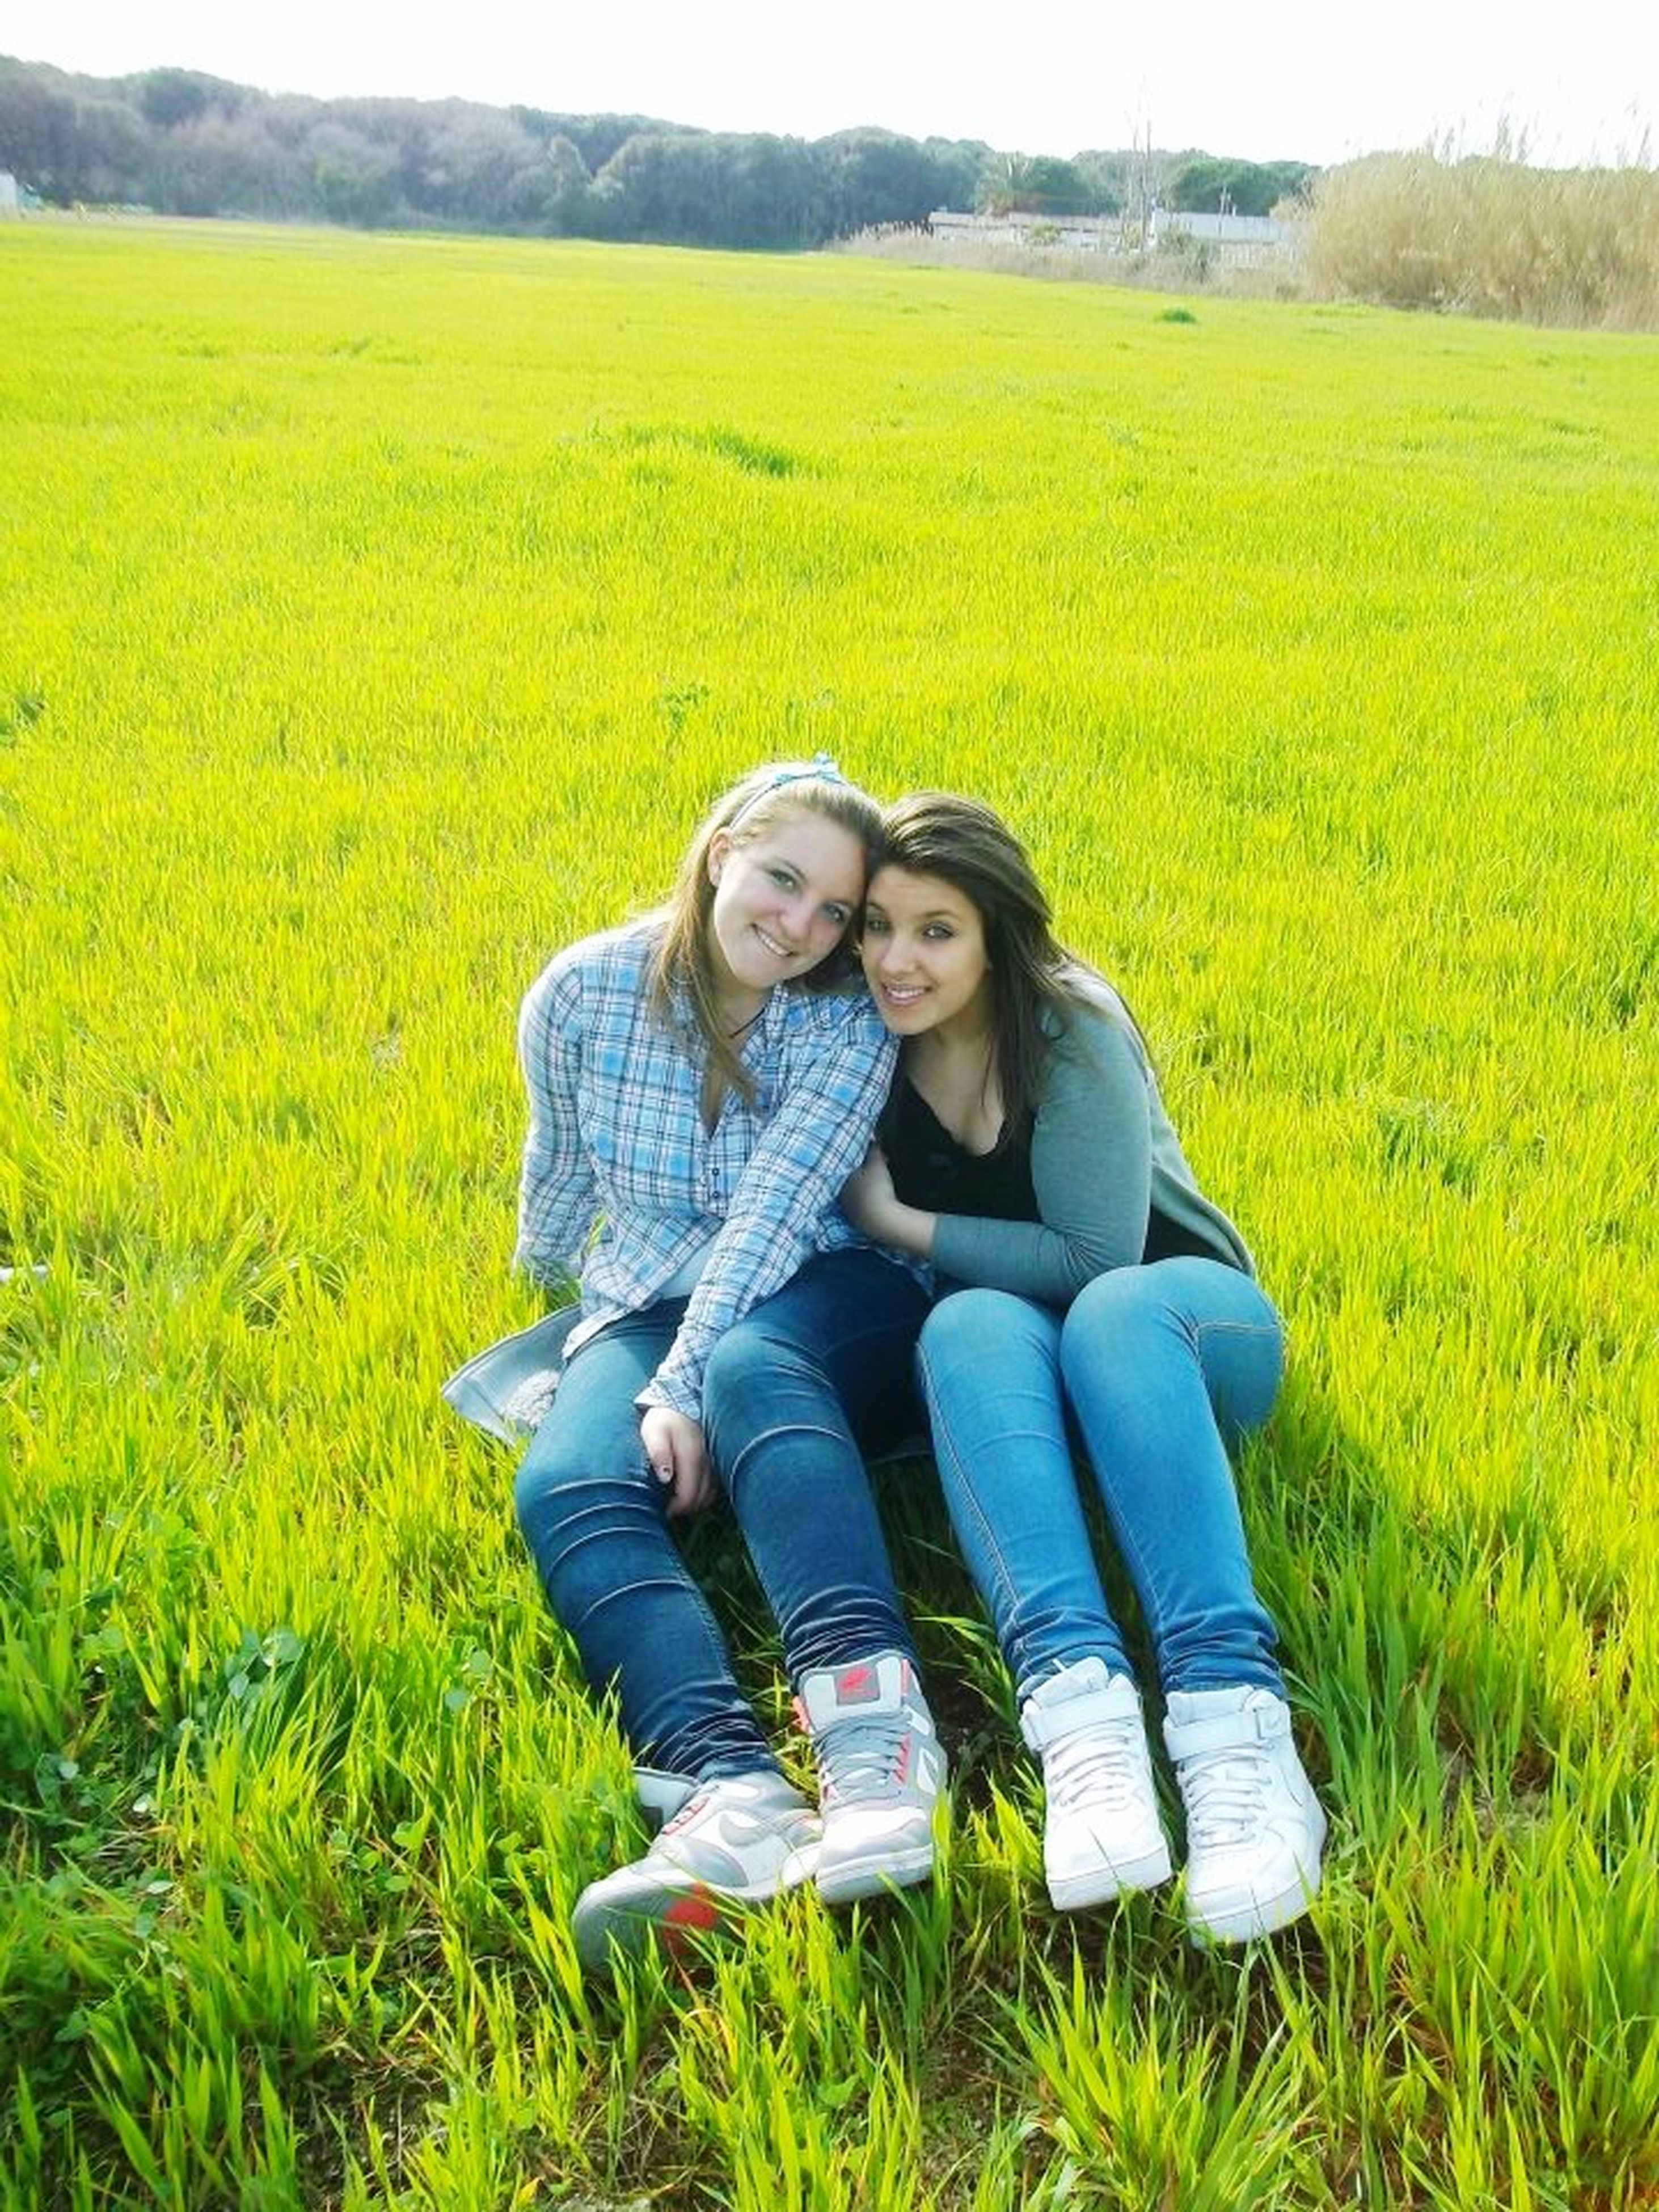 grass, field, person, casual clothing, grassy, green color, bonding, lifestyles, leisure activity, smiling, three quarter length, togetherness, sitting, landscape, growth, young adult, love, rural scene